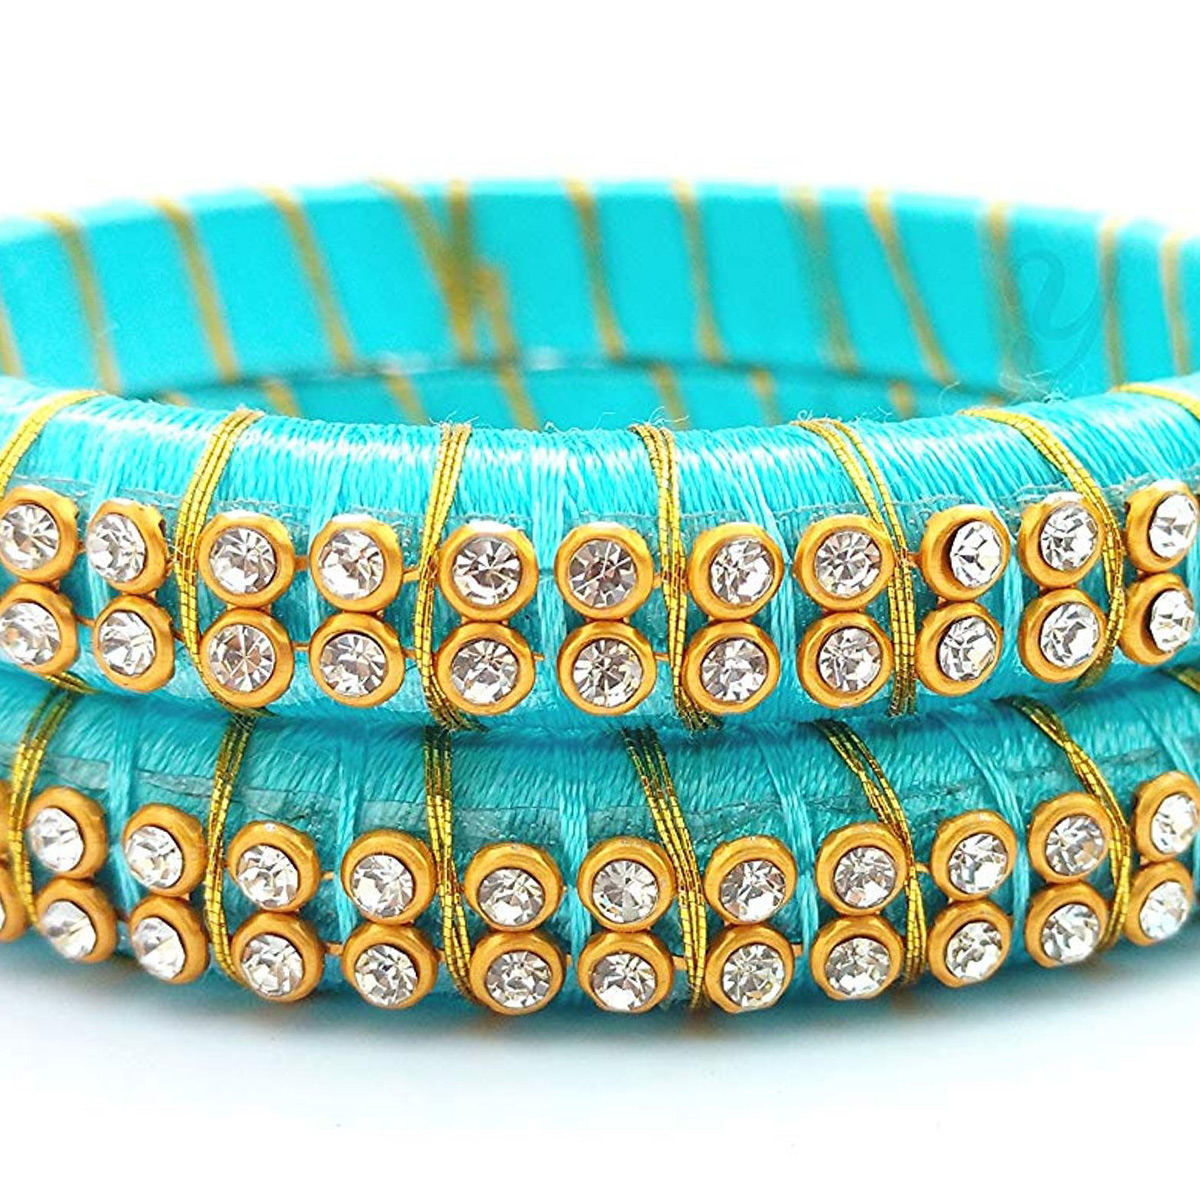 Exotic Sky Blue Colored Festive Wear Stone Work Resham Thread Bangles